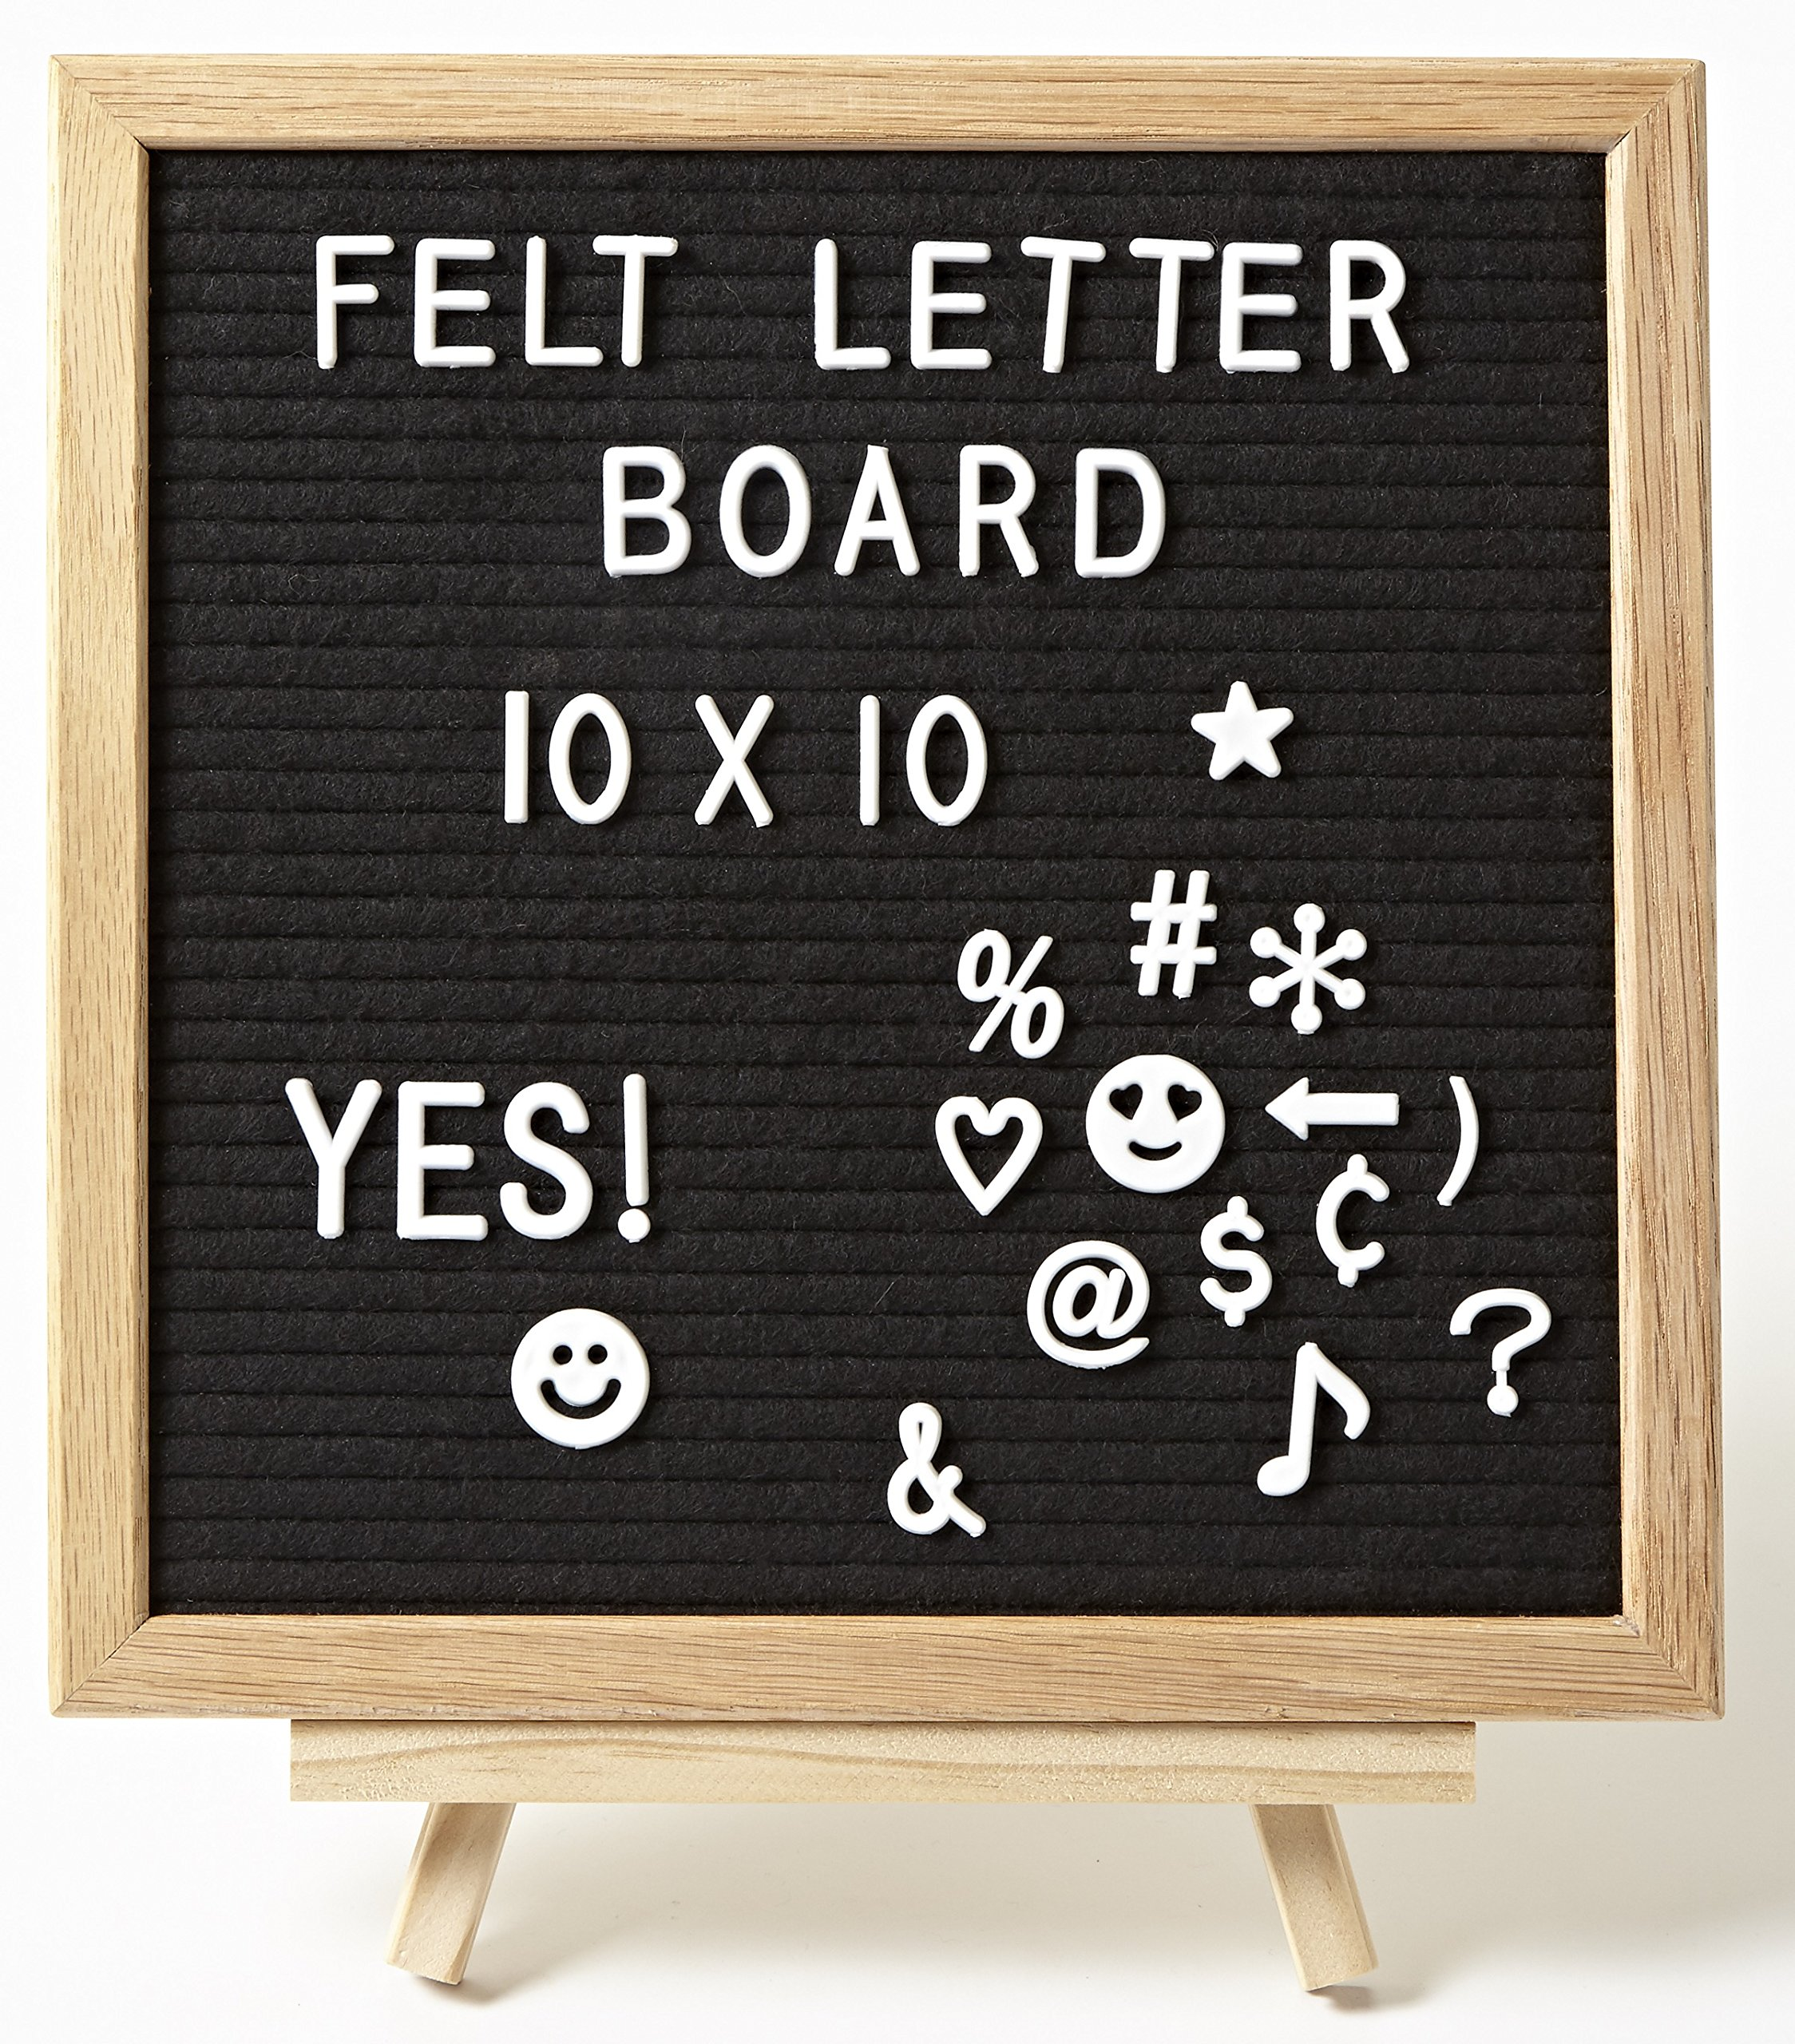 Felt Letter Board Set - Black - 10x10'' Quality Oak Wood Frame - Includes 360 3/4'' and 250 1'' White Letters with Stand and Felt Letter Bags - Changeable Messages Great for Kids